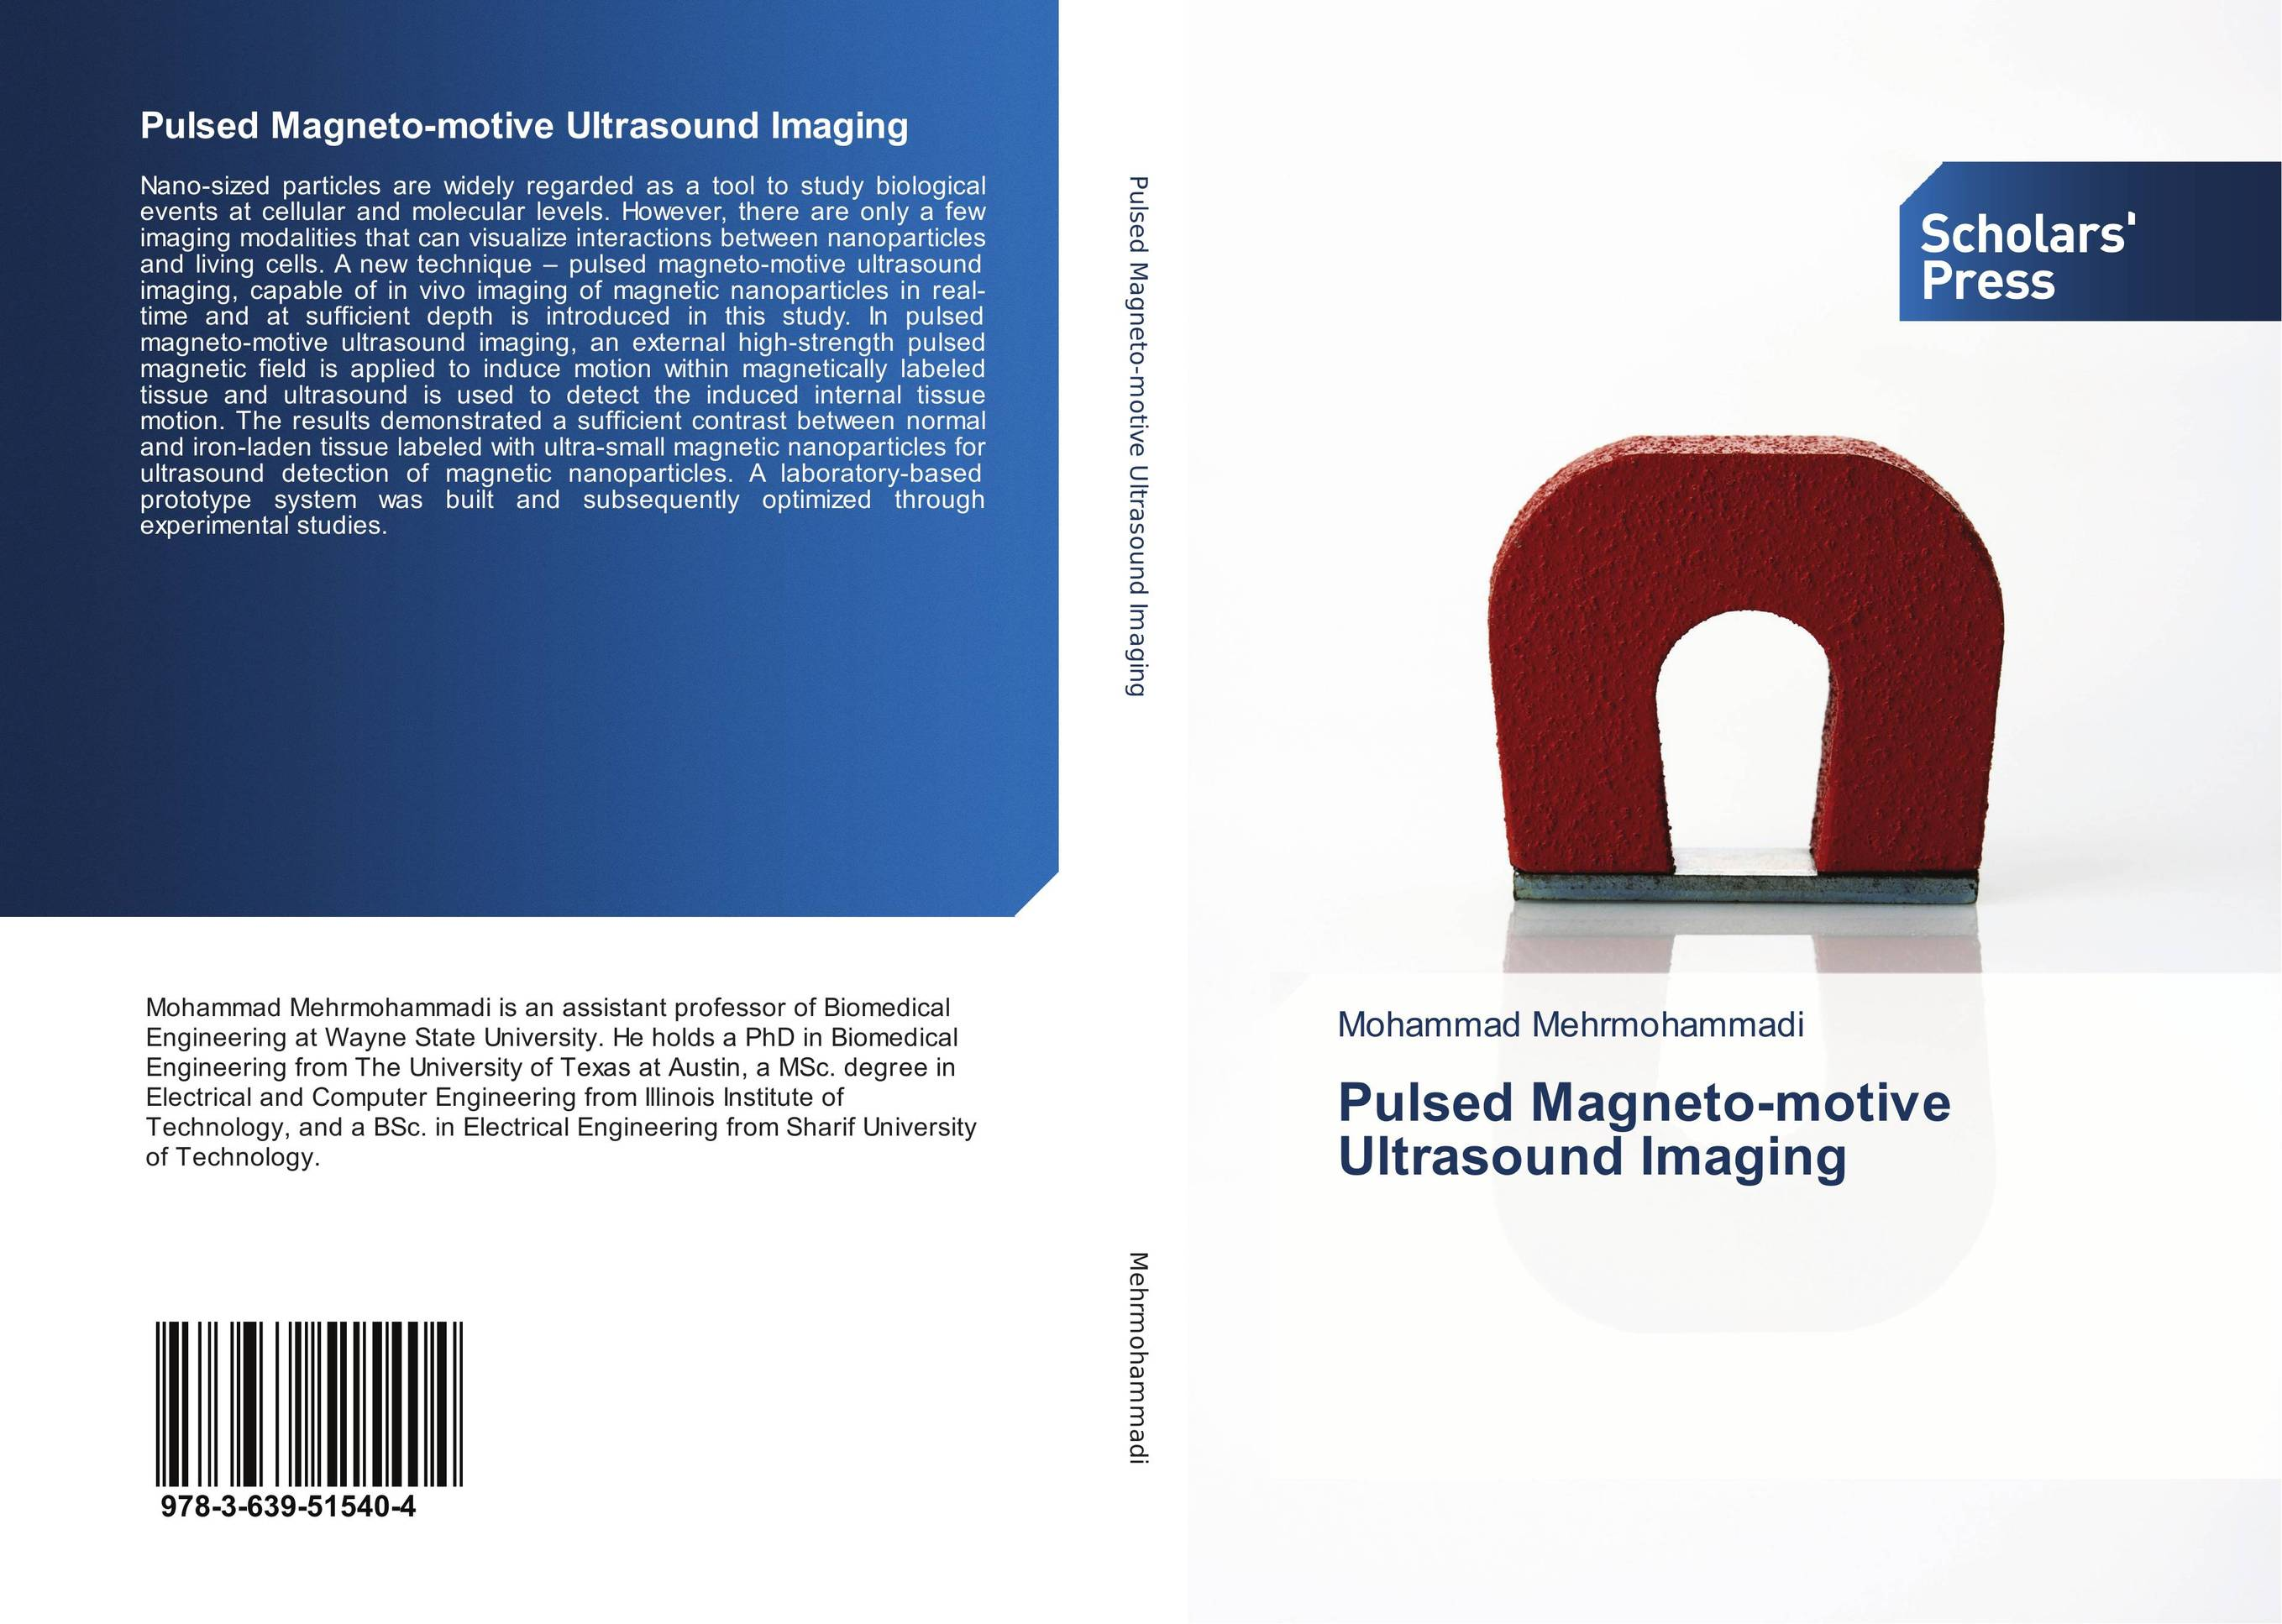 Pulsed Magneto-motive Ultrasound Imaging imaging identity through museums